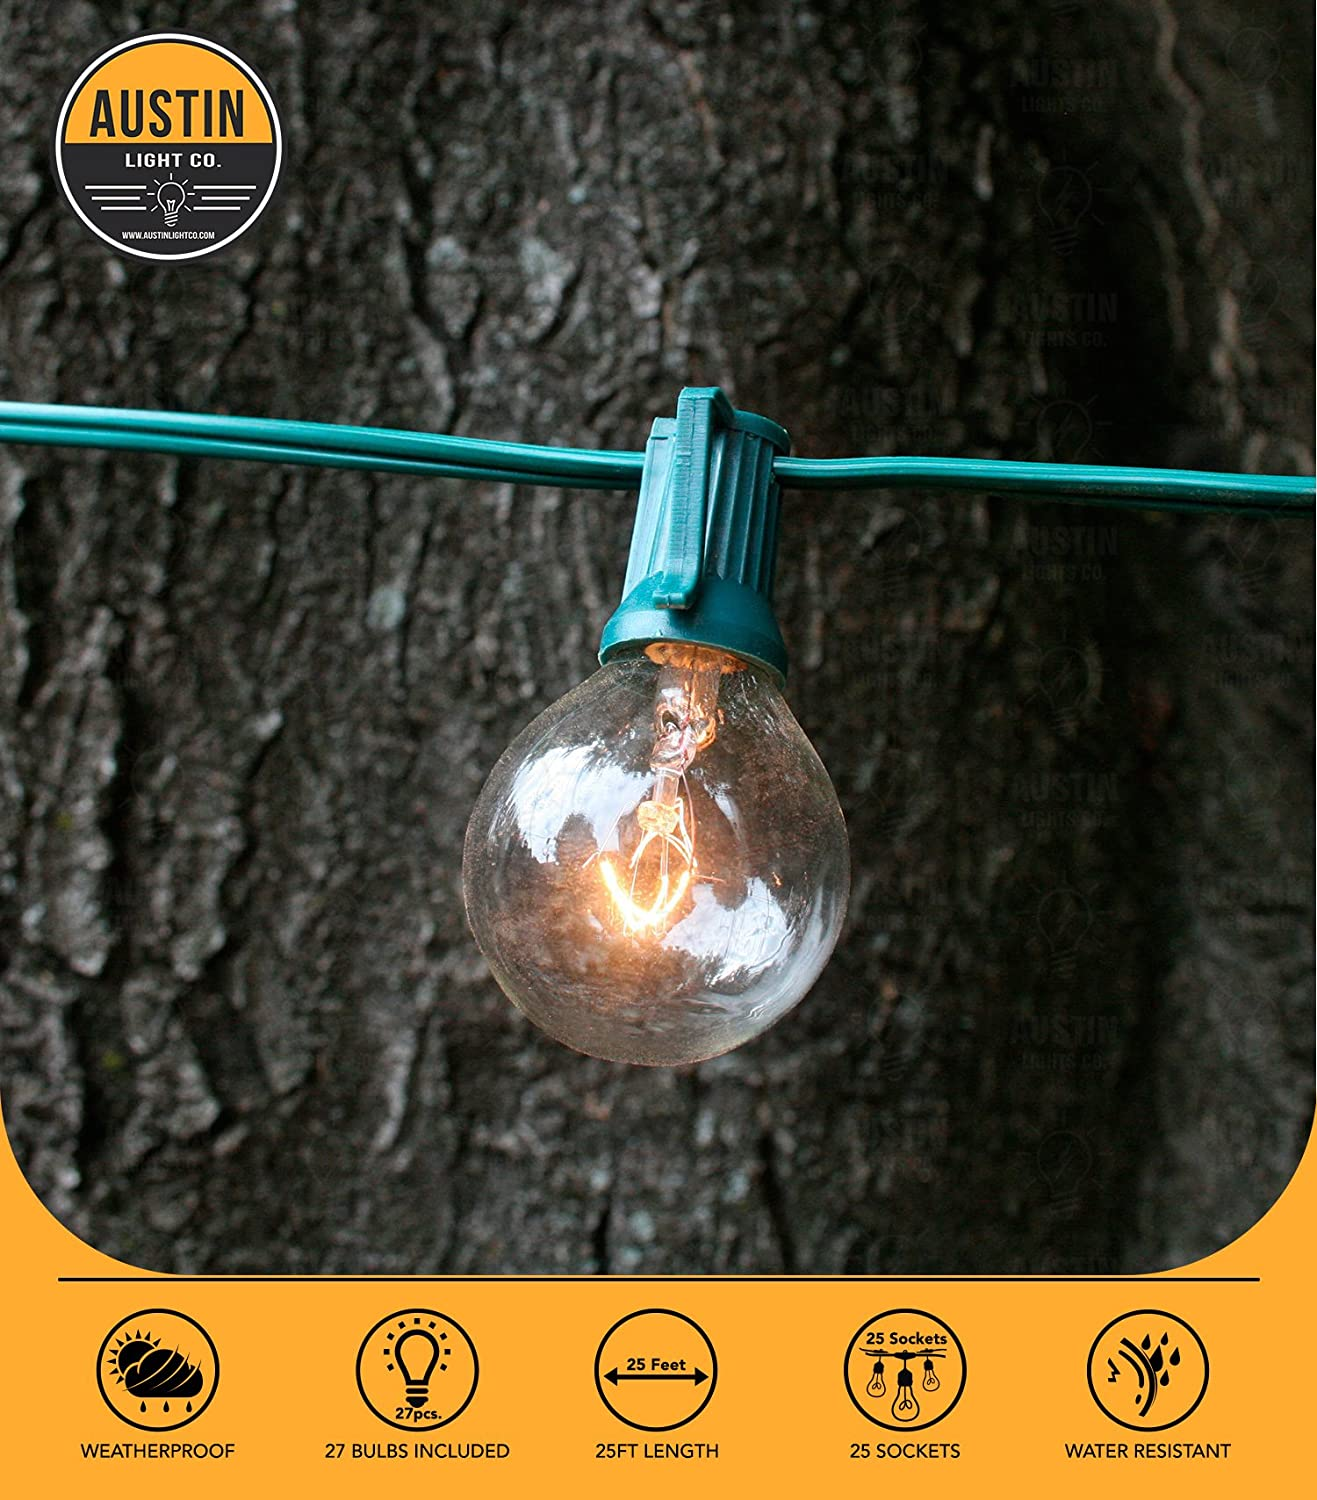 Austin Light Co 25 Foot G40 Globe String Lights With Lightbulb Learning Wiring Bulbs By Ul Listed For Indoor And Outdoor Commercial Decoration Great Patios Cafs Parties Homes Bistros Weddings